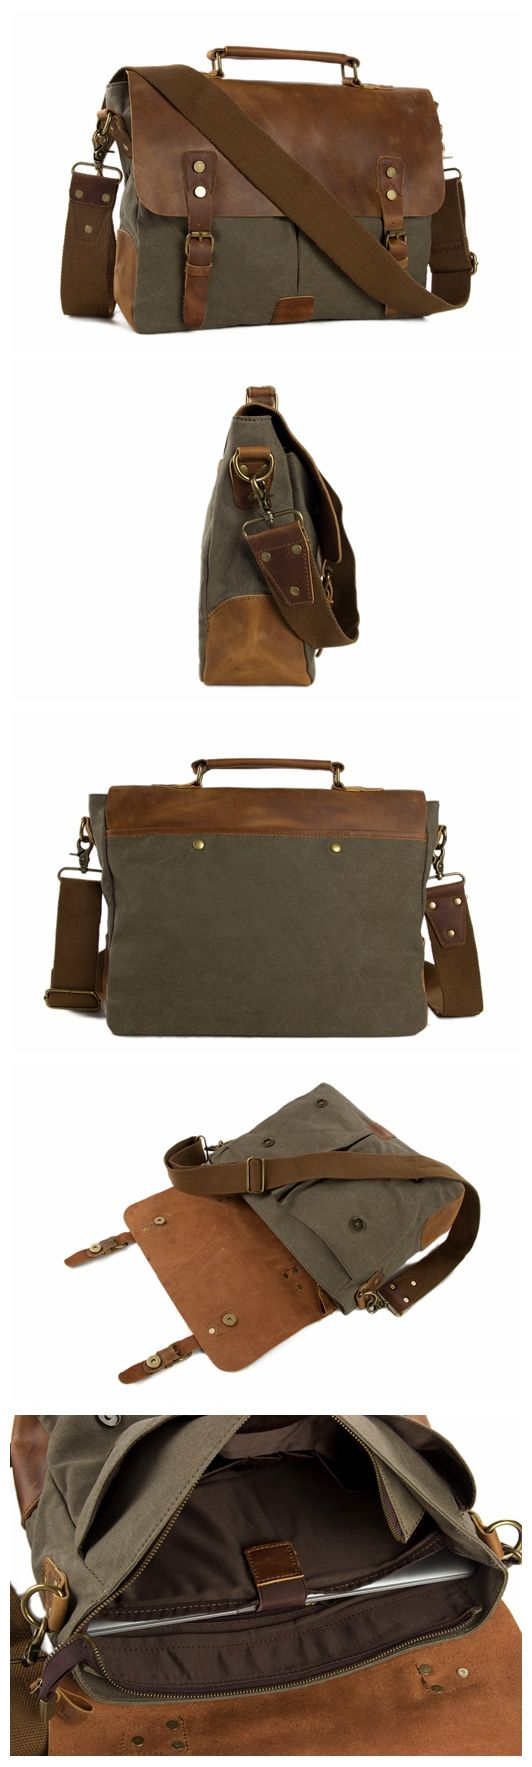 Handmade Canvas Leather Briefcase Messenger Bag Crossbody Shoulder Bag Laptop Bag